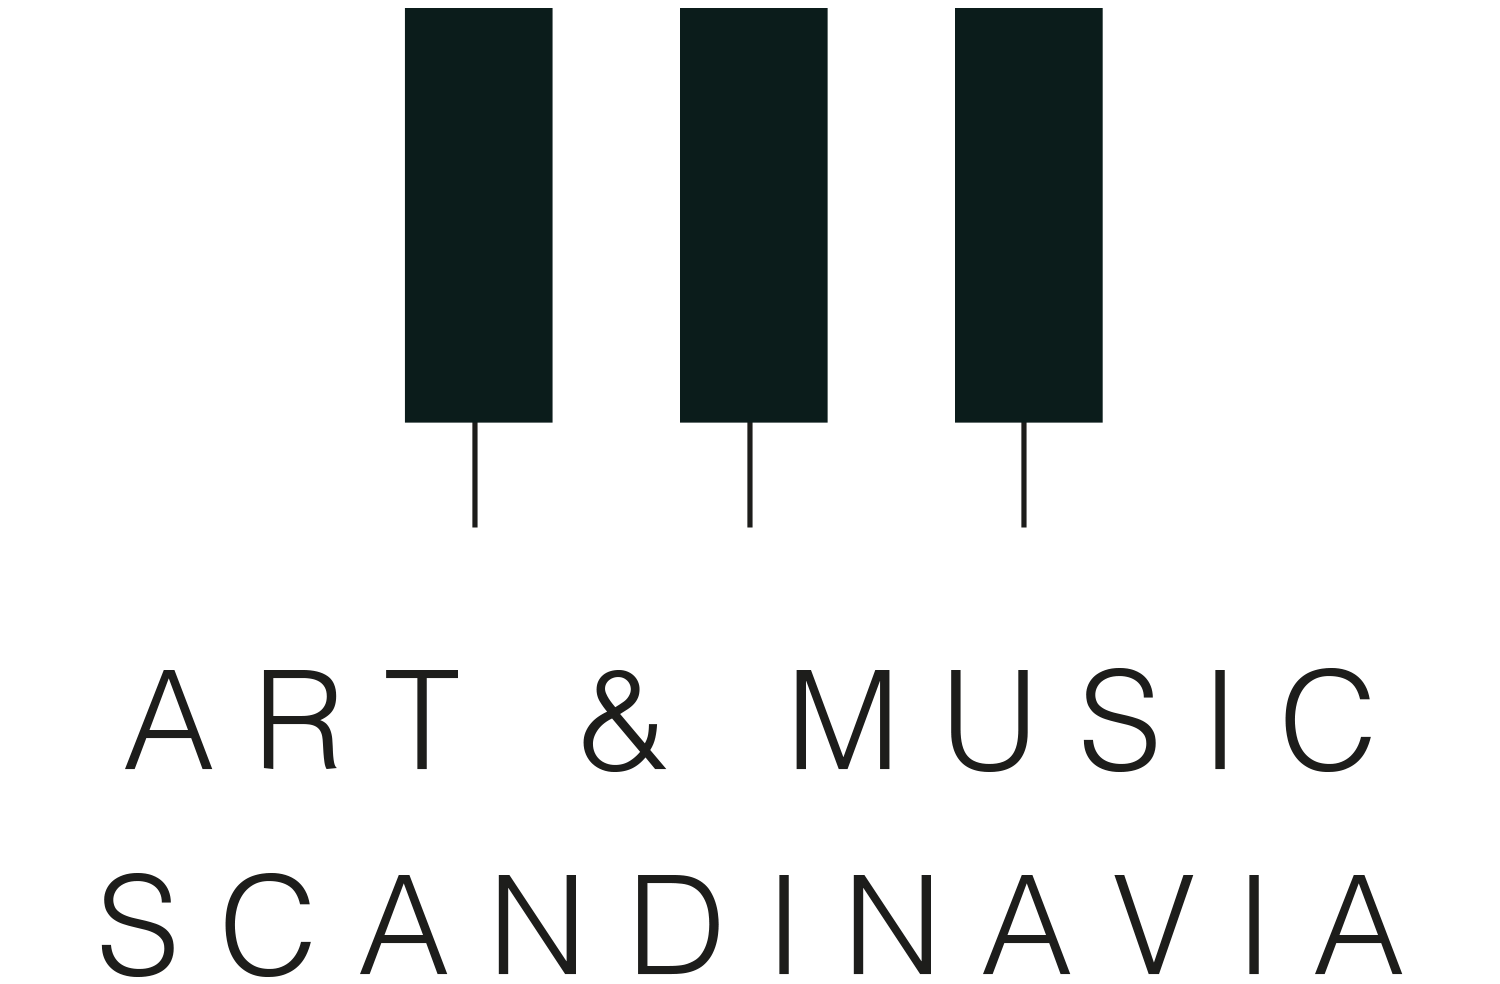 art & music scandinavia